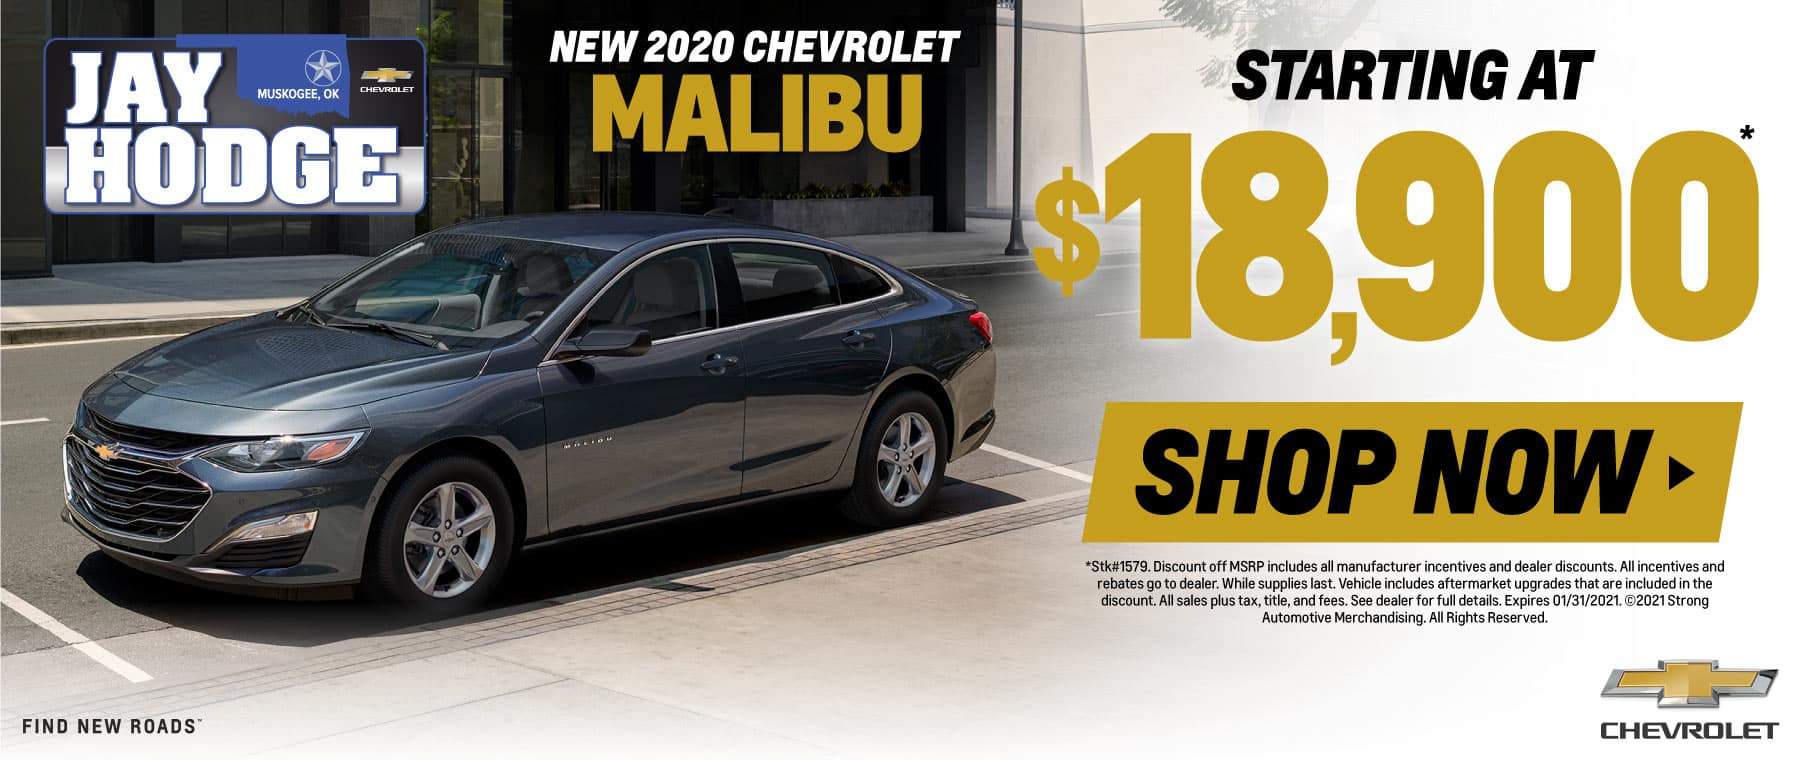 New 2020 Chevrolet Malibu - Starting at $18,900 - Shop Now